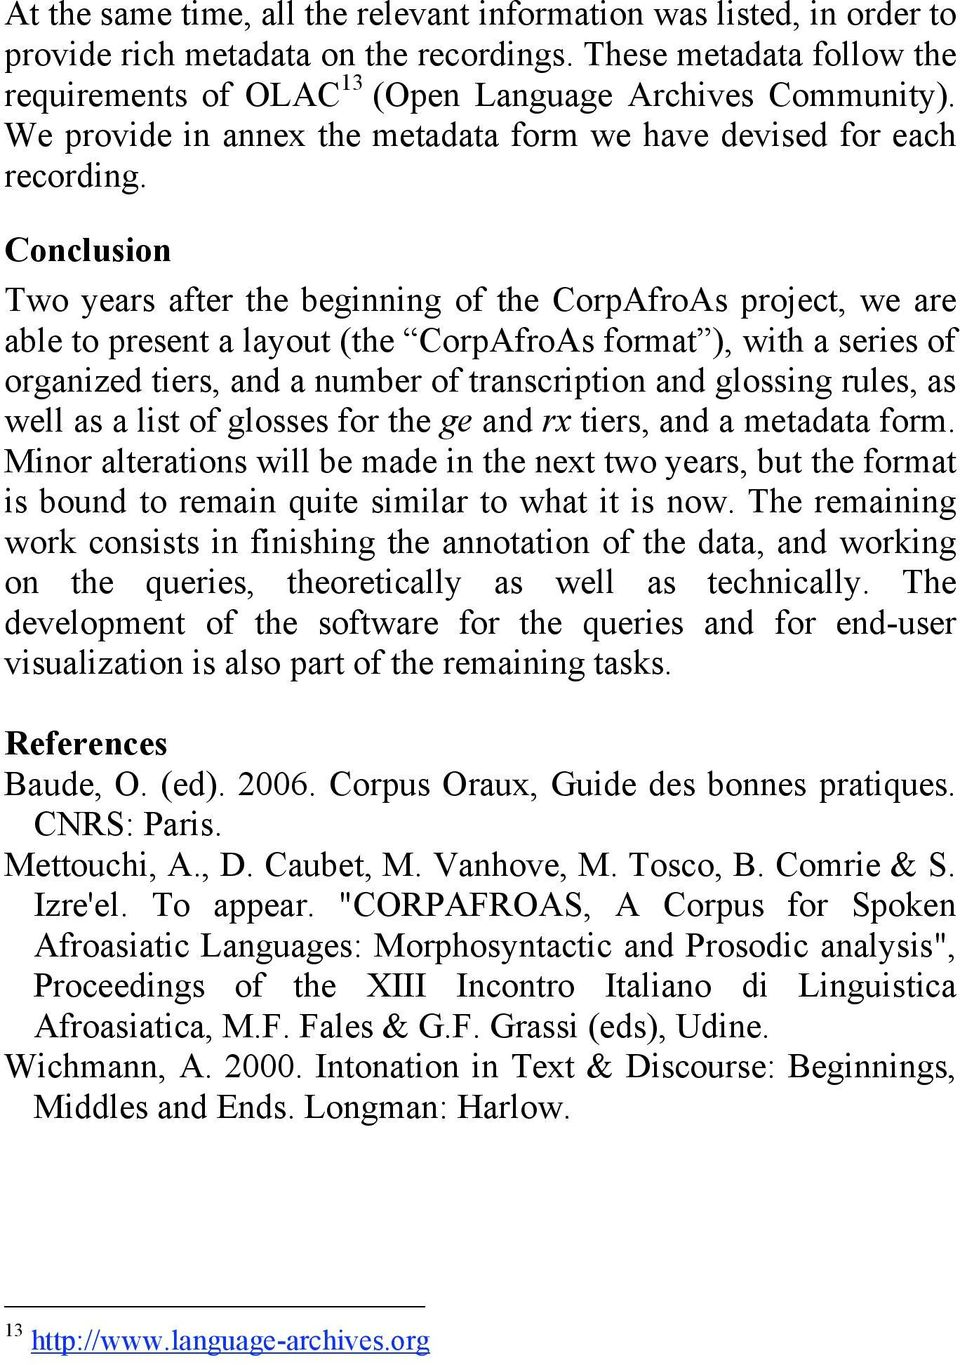 Conclusion Two years after the beginning of the CorpAfroAs project, we are able to present a layout (the CorpAfroAs format ), with a series of organized tiers, and a number of transcription and